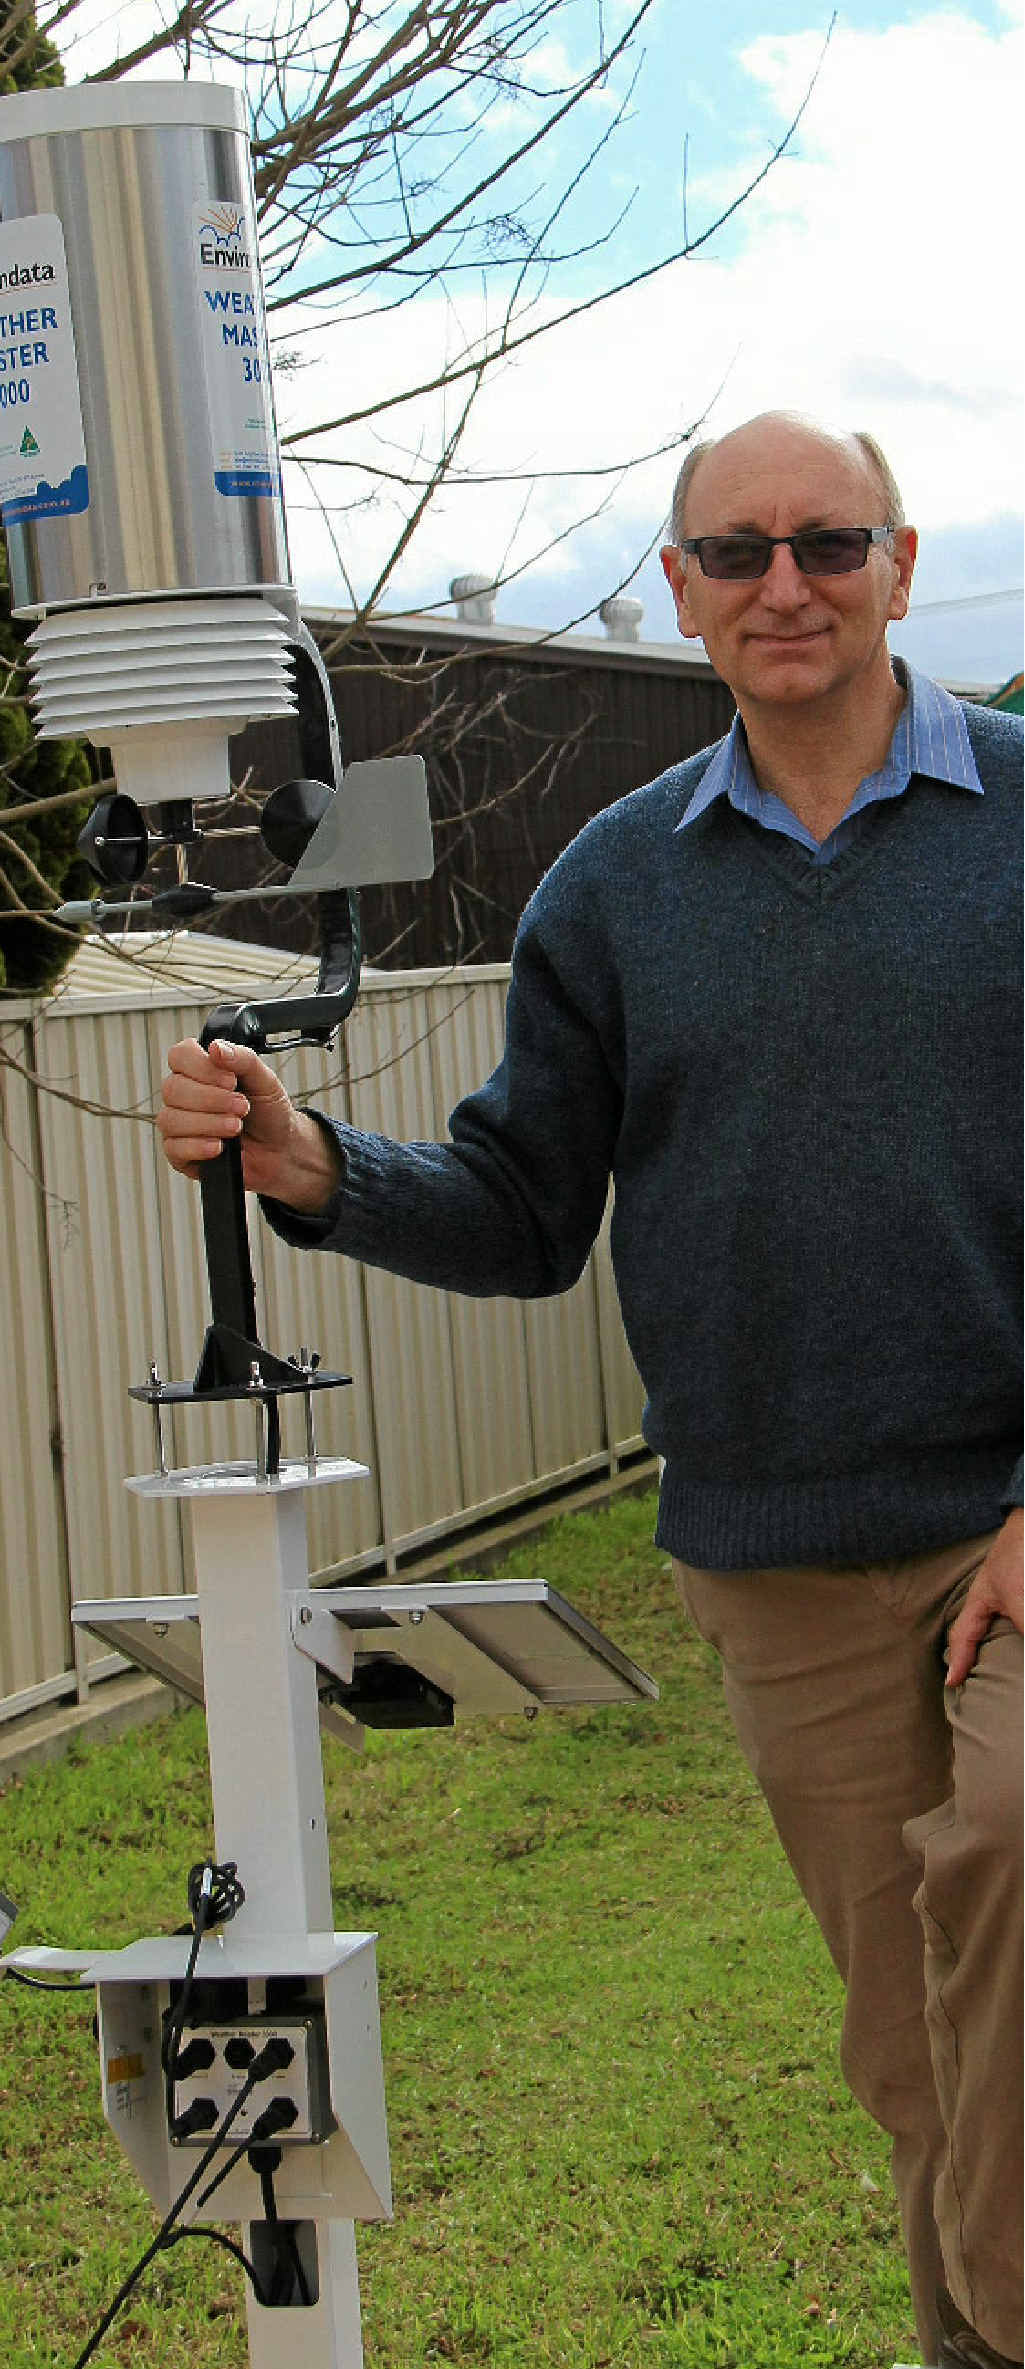 PROUD INVENTOR: Environdata founder Peter Rodeck shows off the Weathermaster, which is now 18 years old.